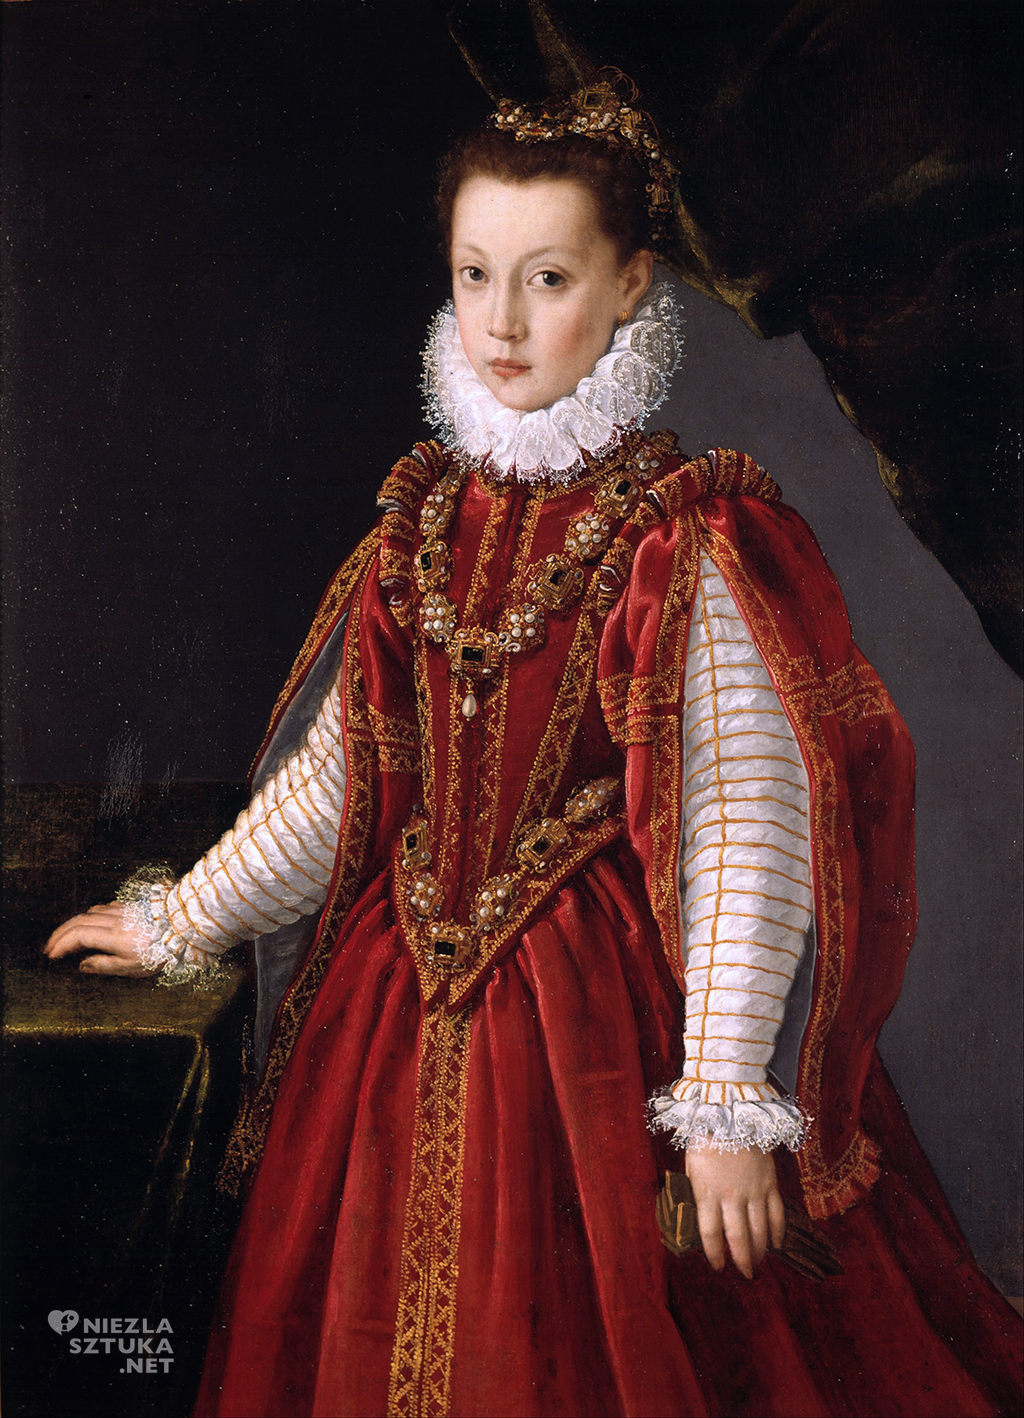 Anguissola,_Sofonisba_-_Portrait_of_a_Young_Lady_-_Google_Art_Project